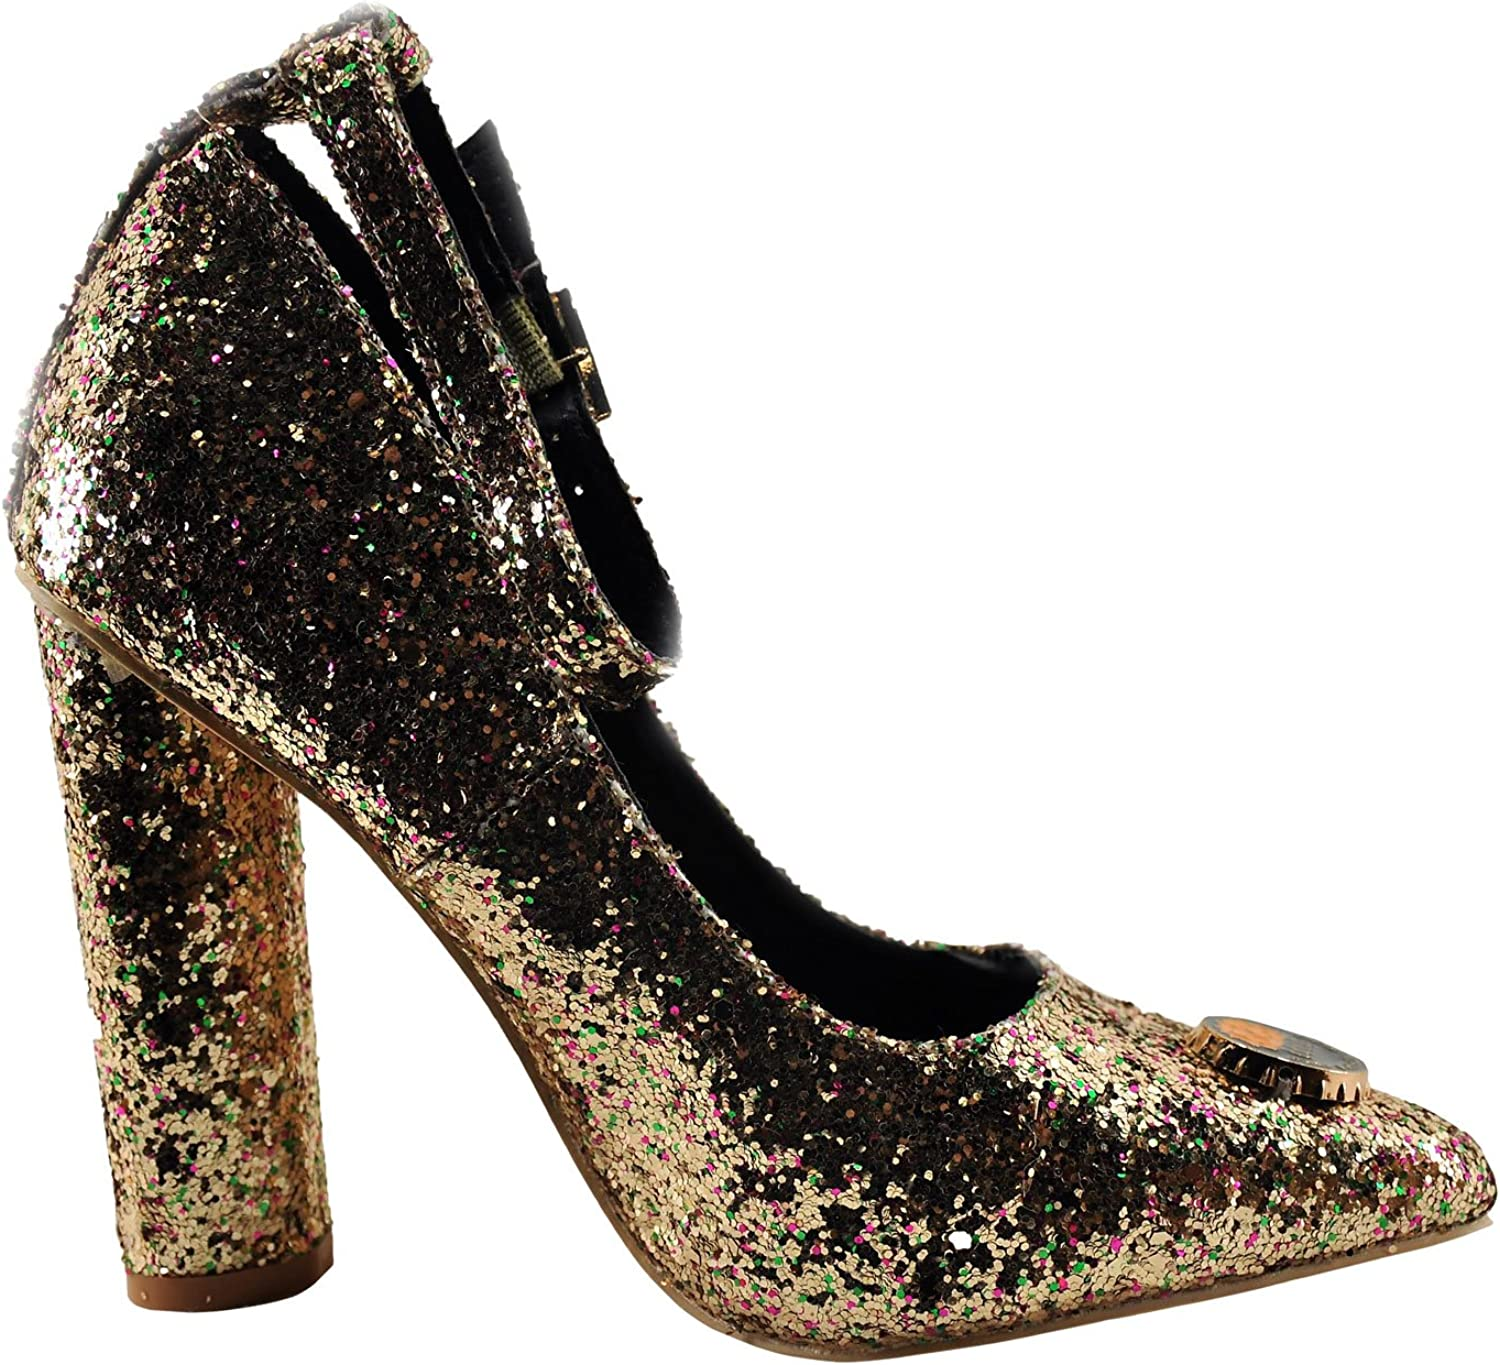 CAPE ROBBIN Ella-25 Women's shoes Ella 25 Sparkled Pin Accented Pump